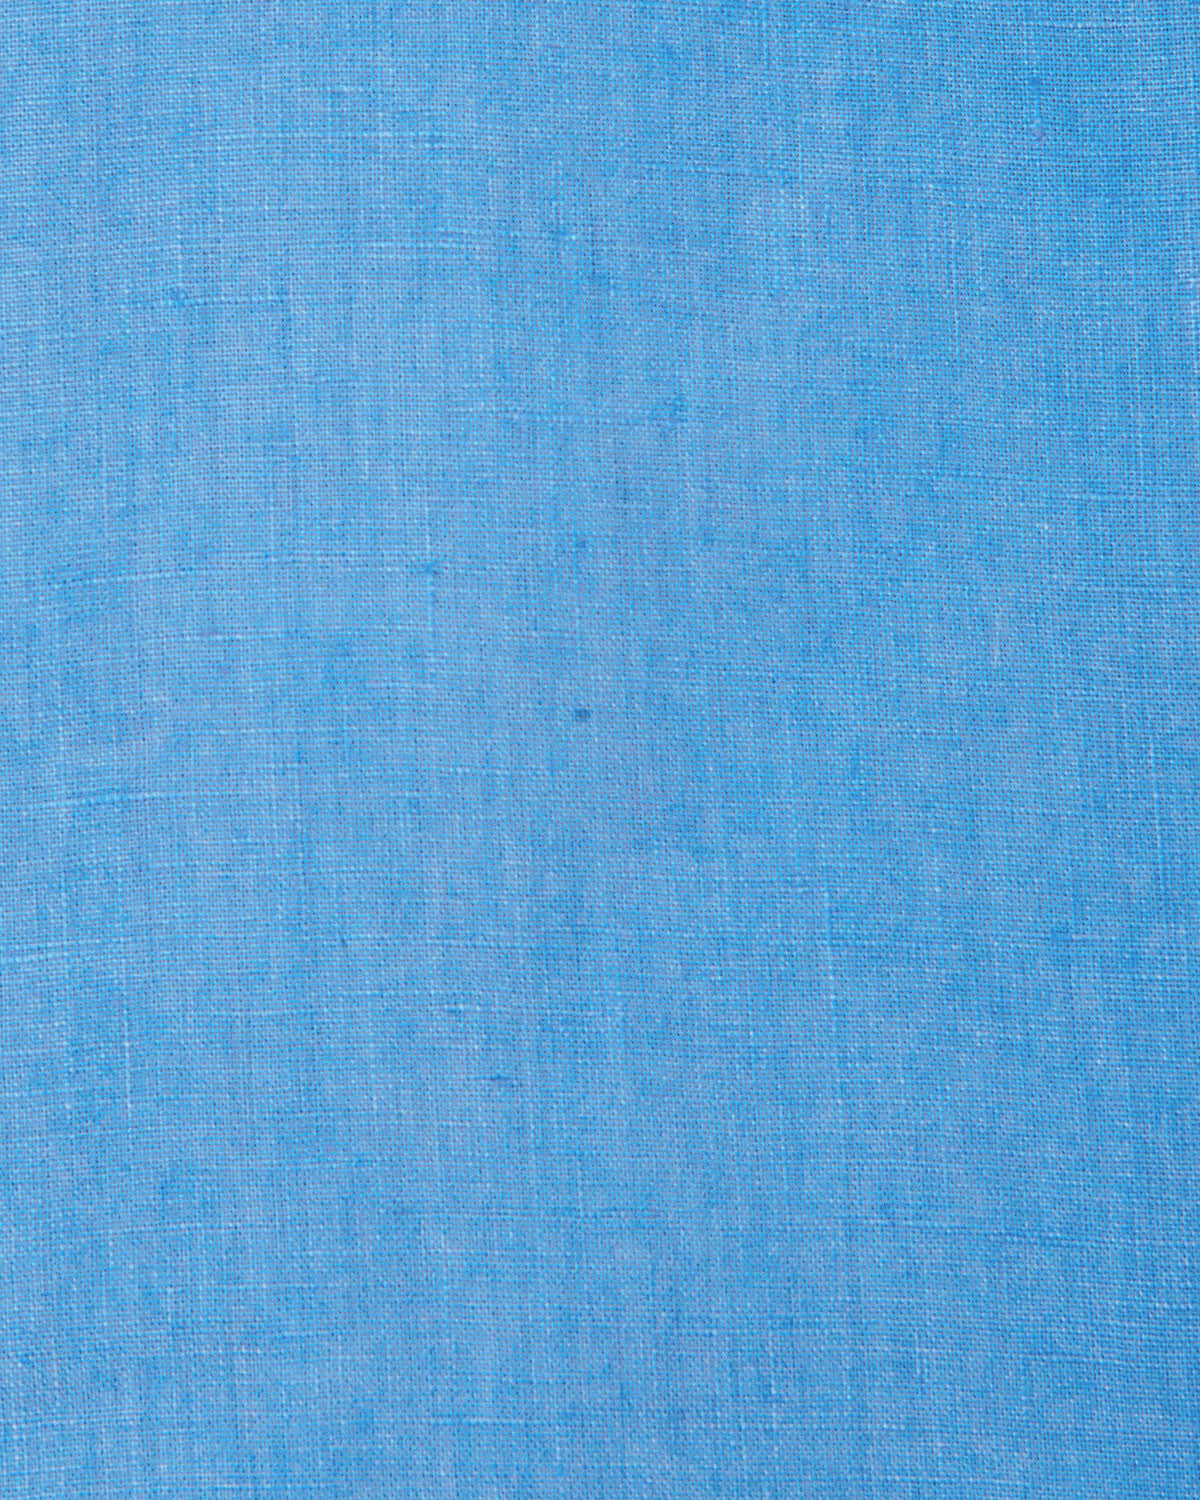 Mens Linen Shirt (Cornflower Blue) Swatch